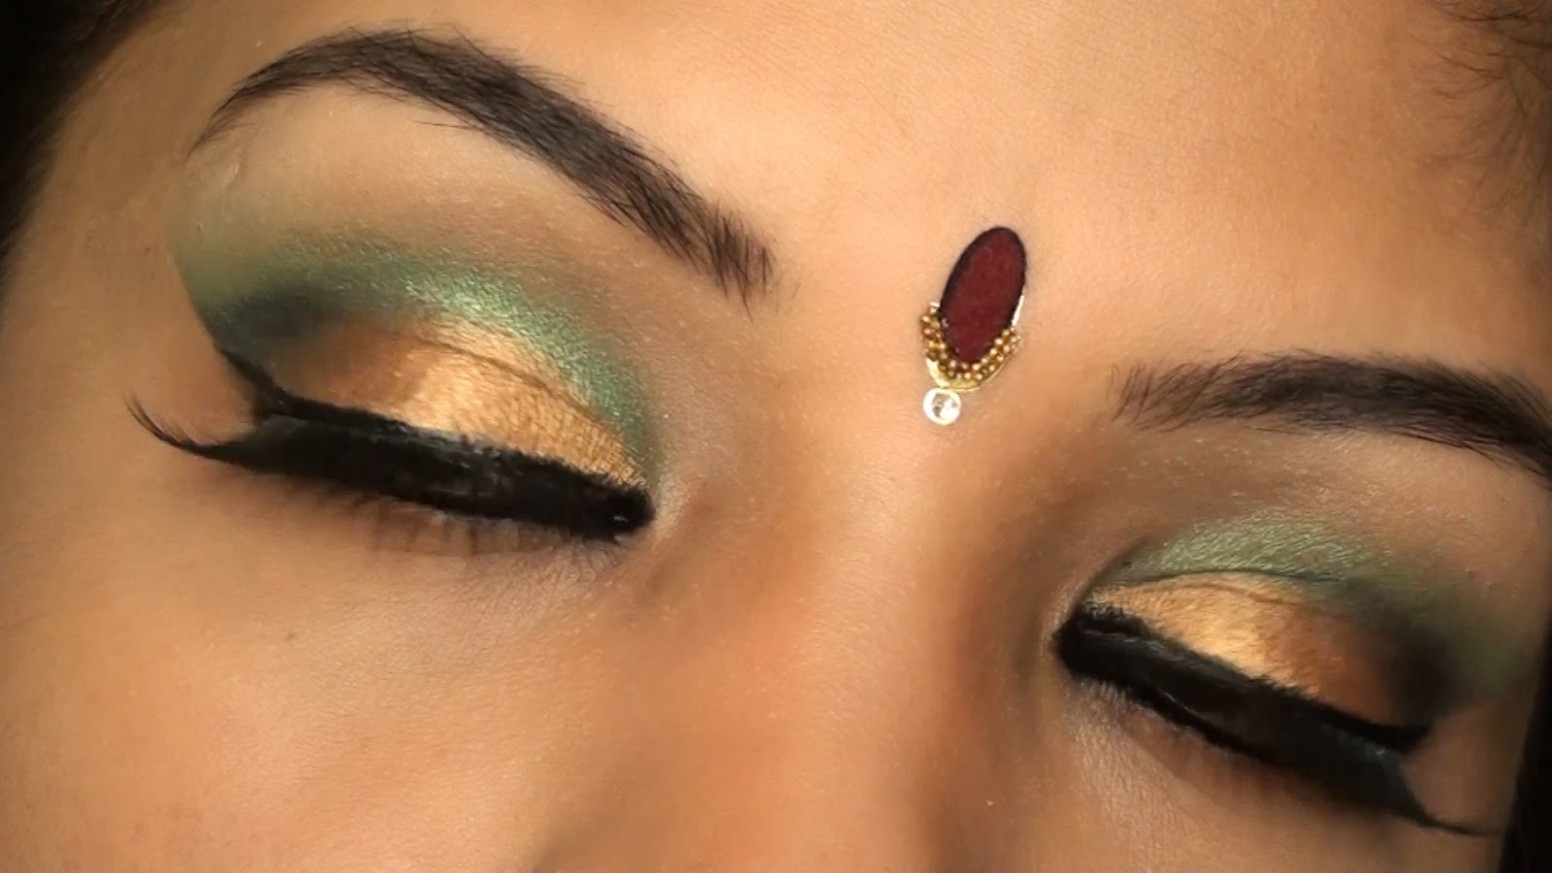 Makeup Tutorial For Indian Wedding - Mugeek Vidalondon